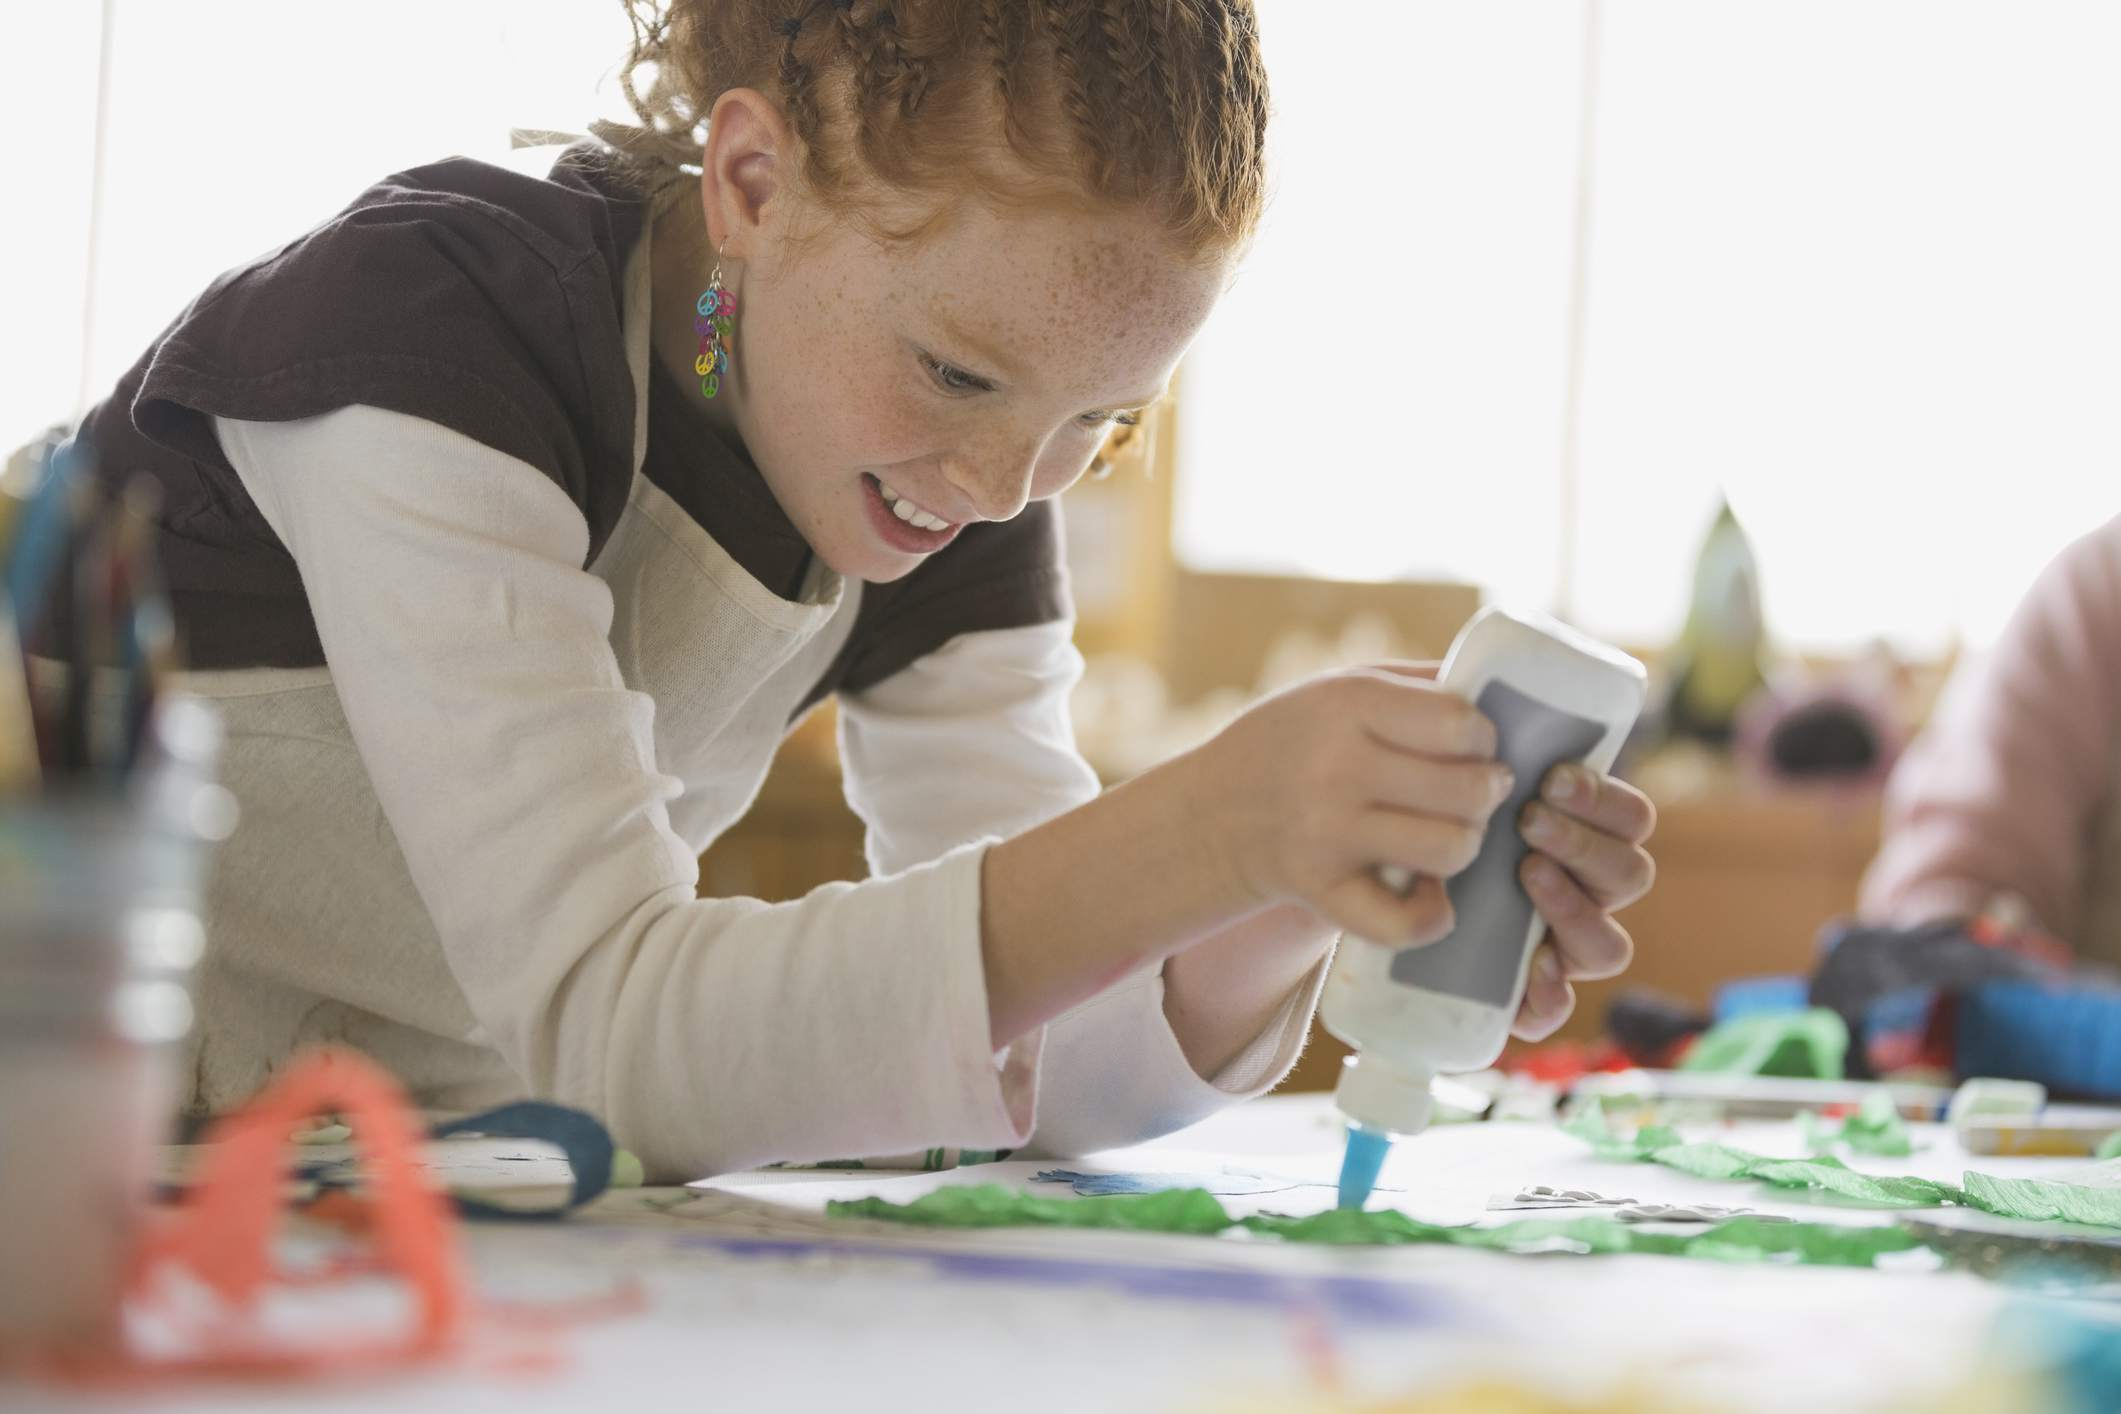 A girl glueing a craft project